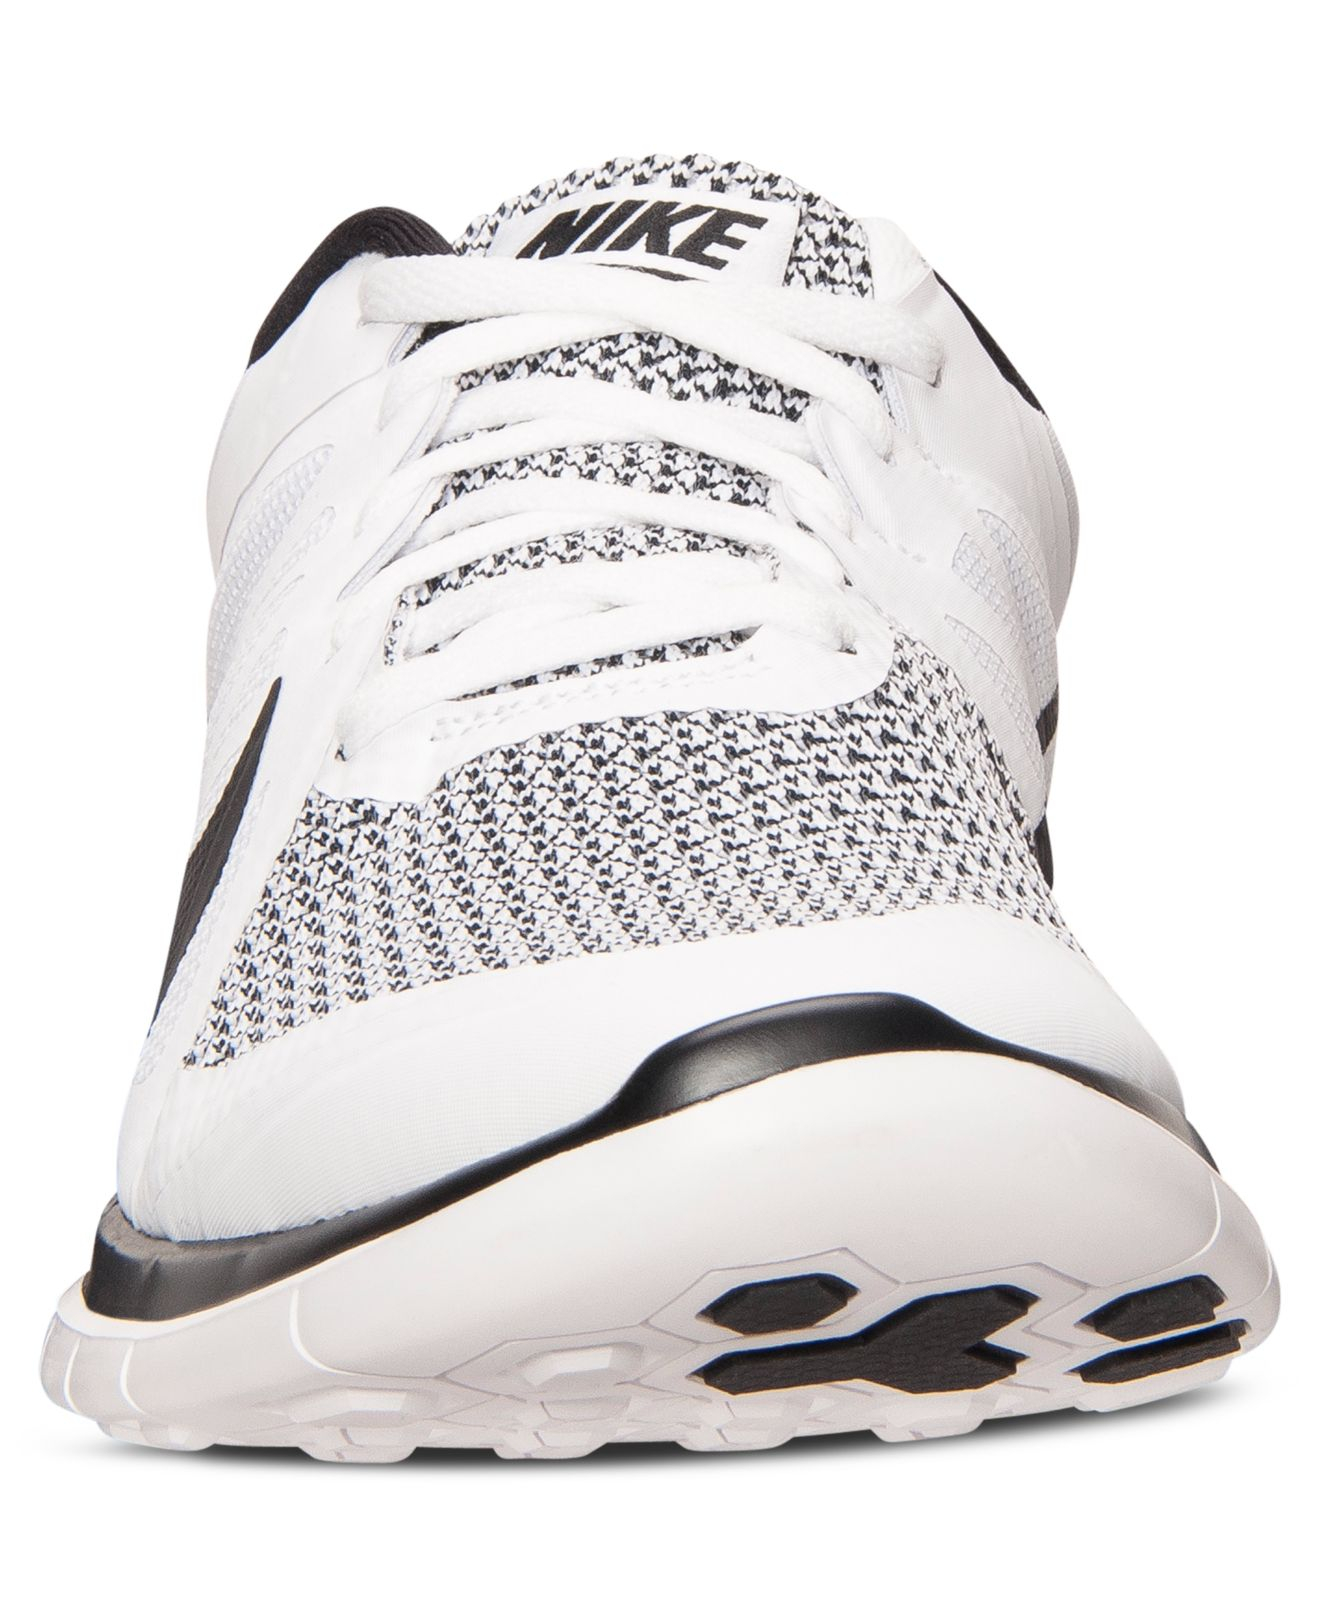 new product 4b6cd 016d4 ... where to buy lyst nike mens free 4.0 v4 running sneakers from finish  line in white